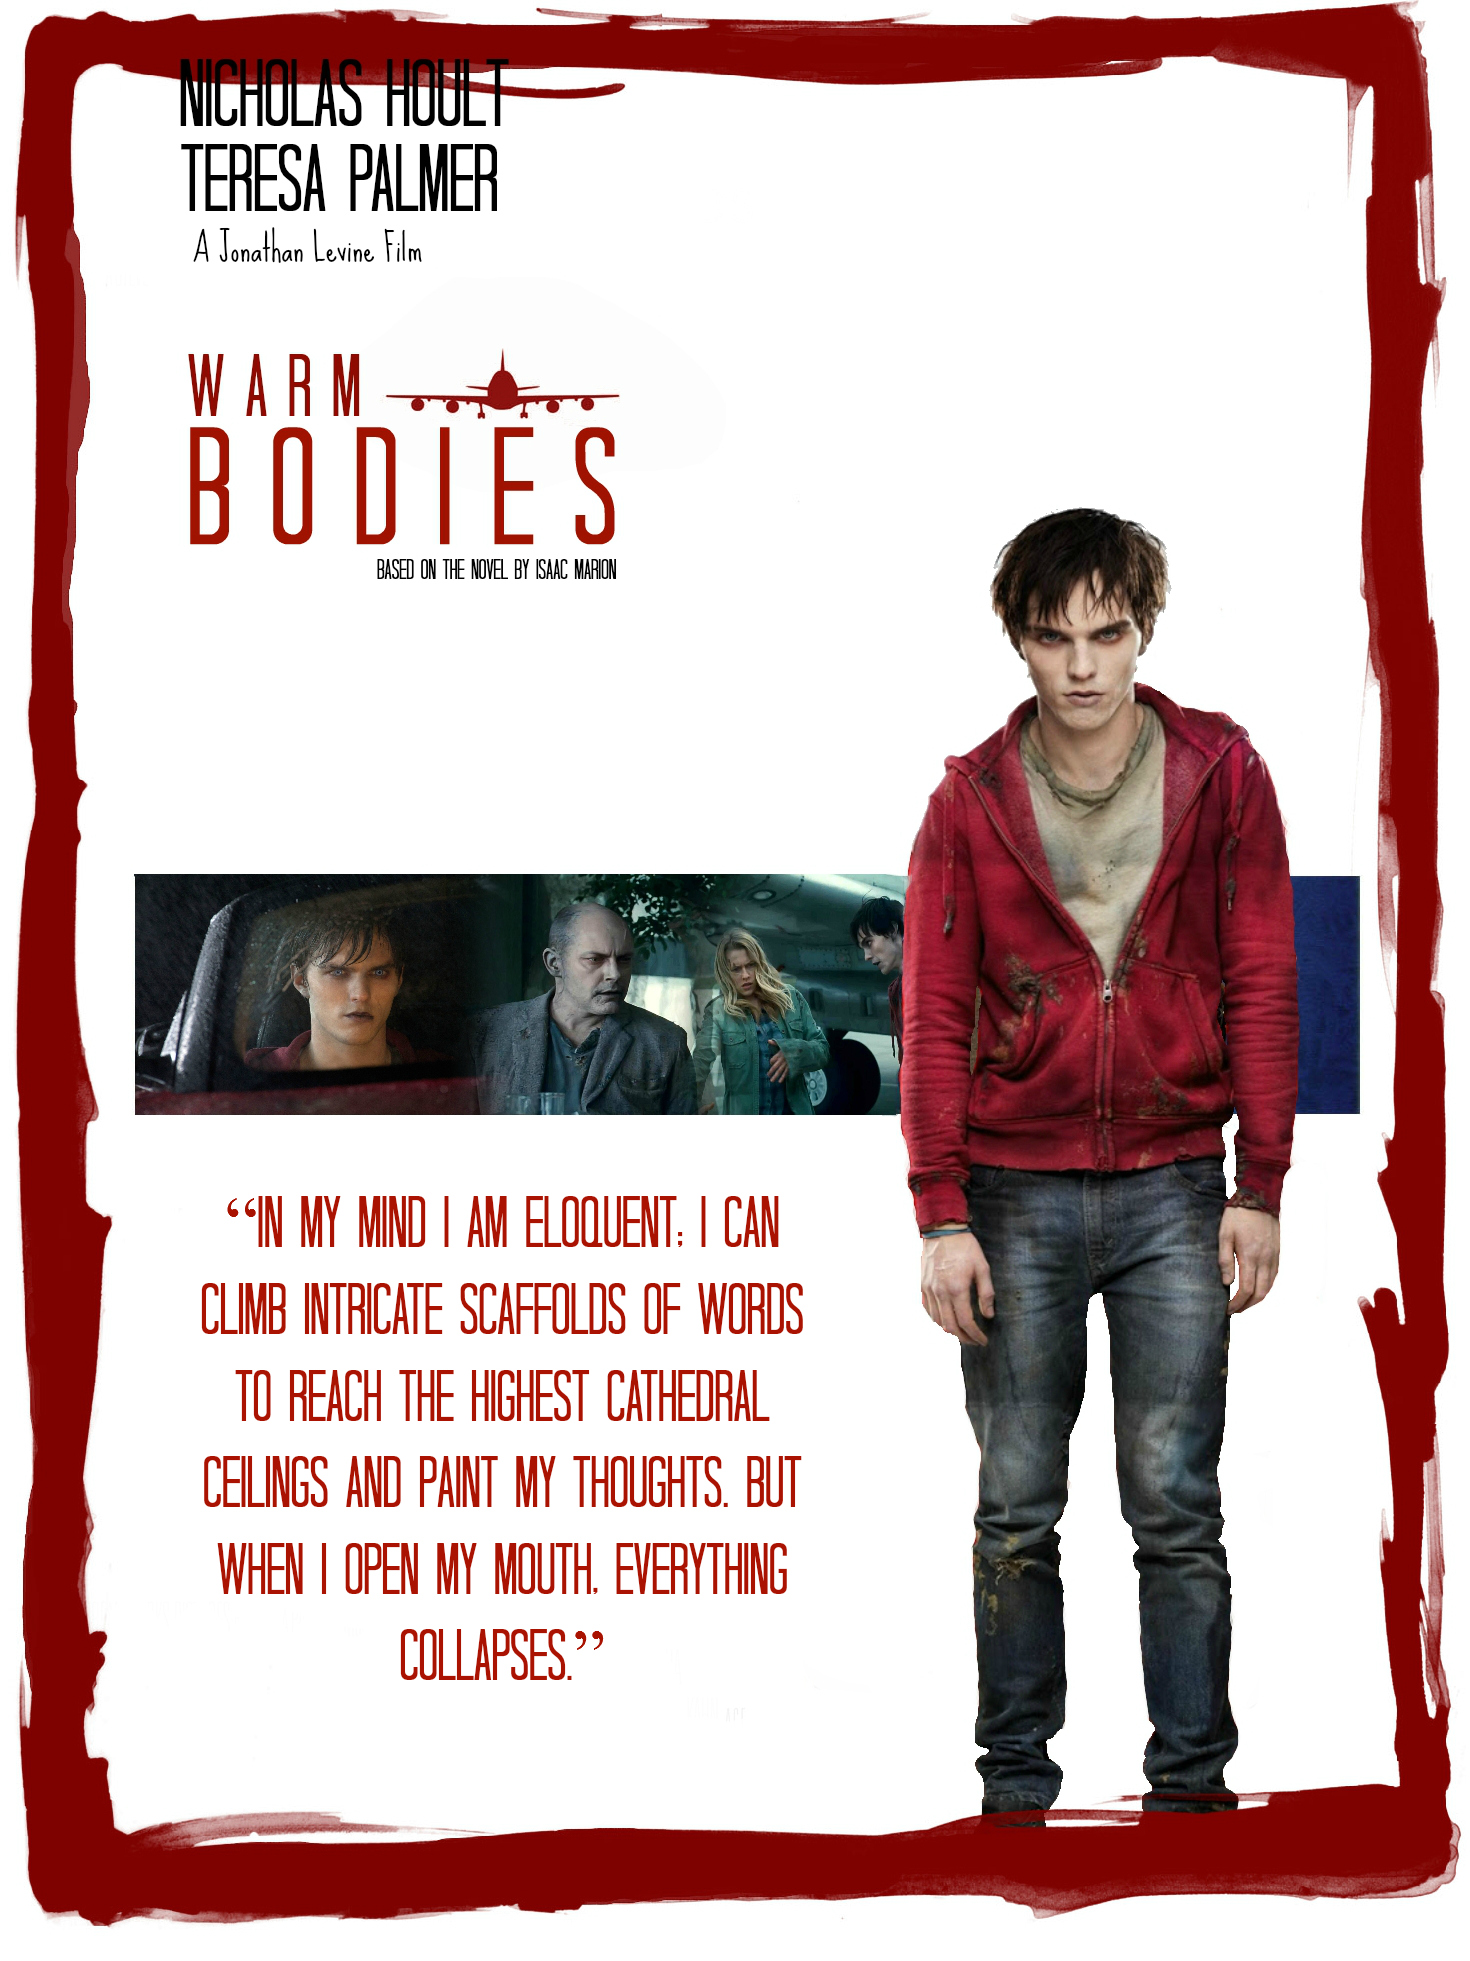 warm-bodies-warm-bodies-movie-33685287-1470-1961